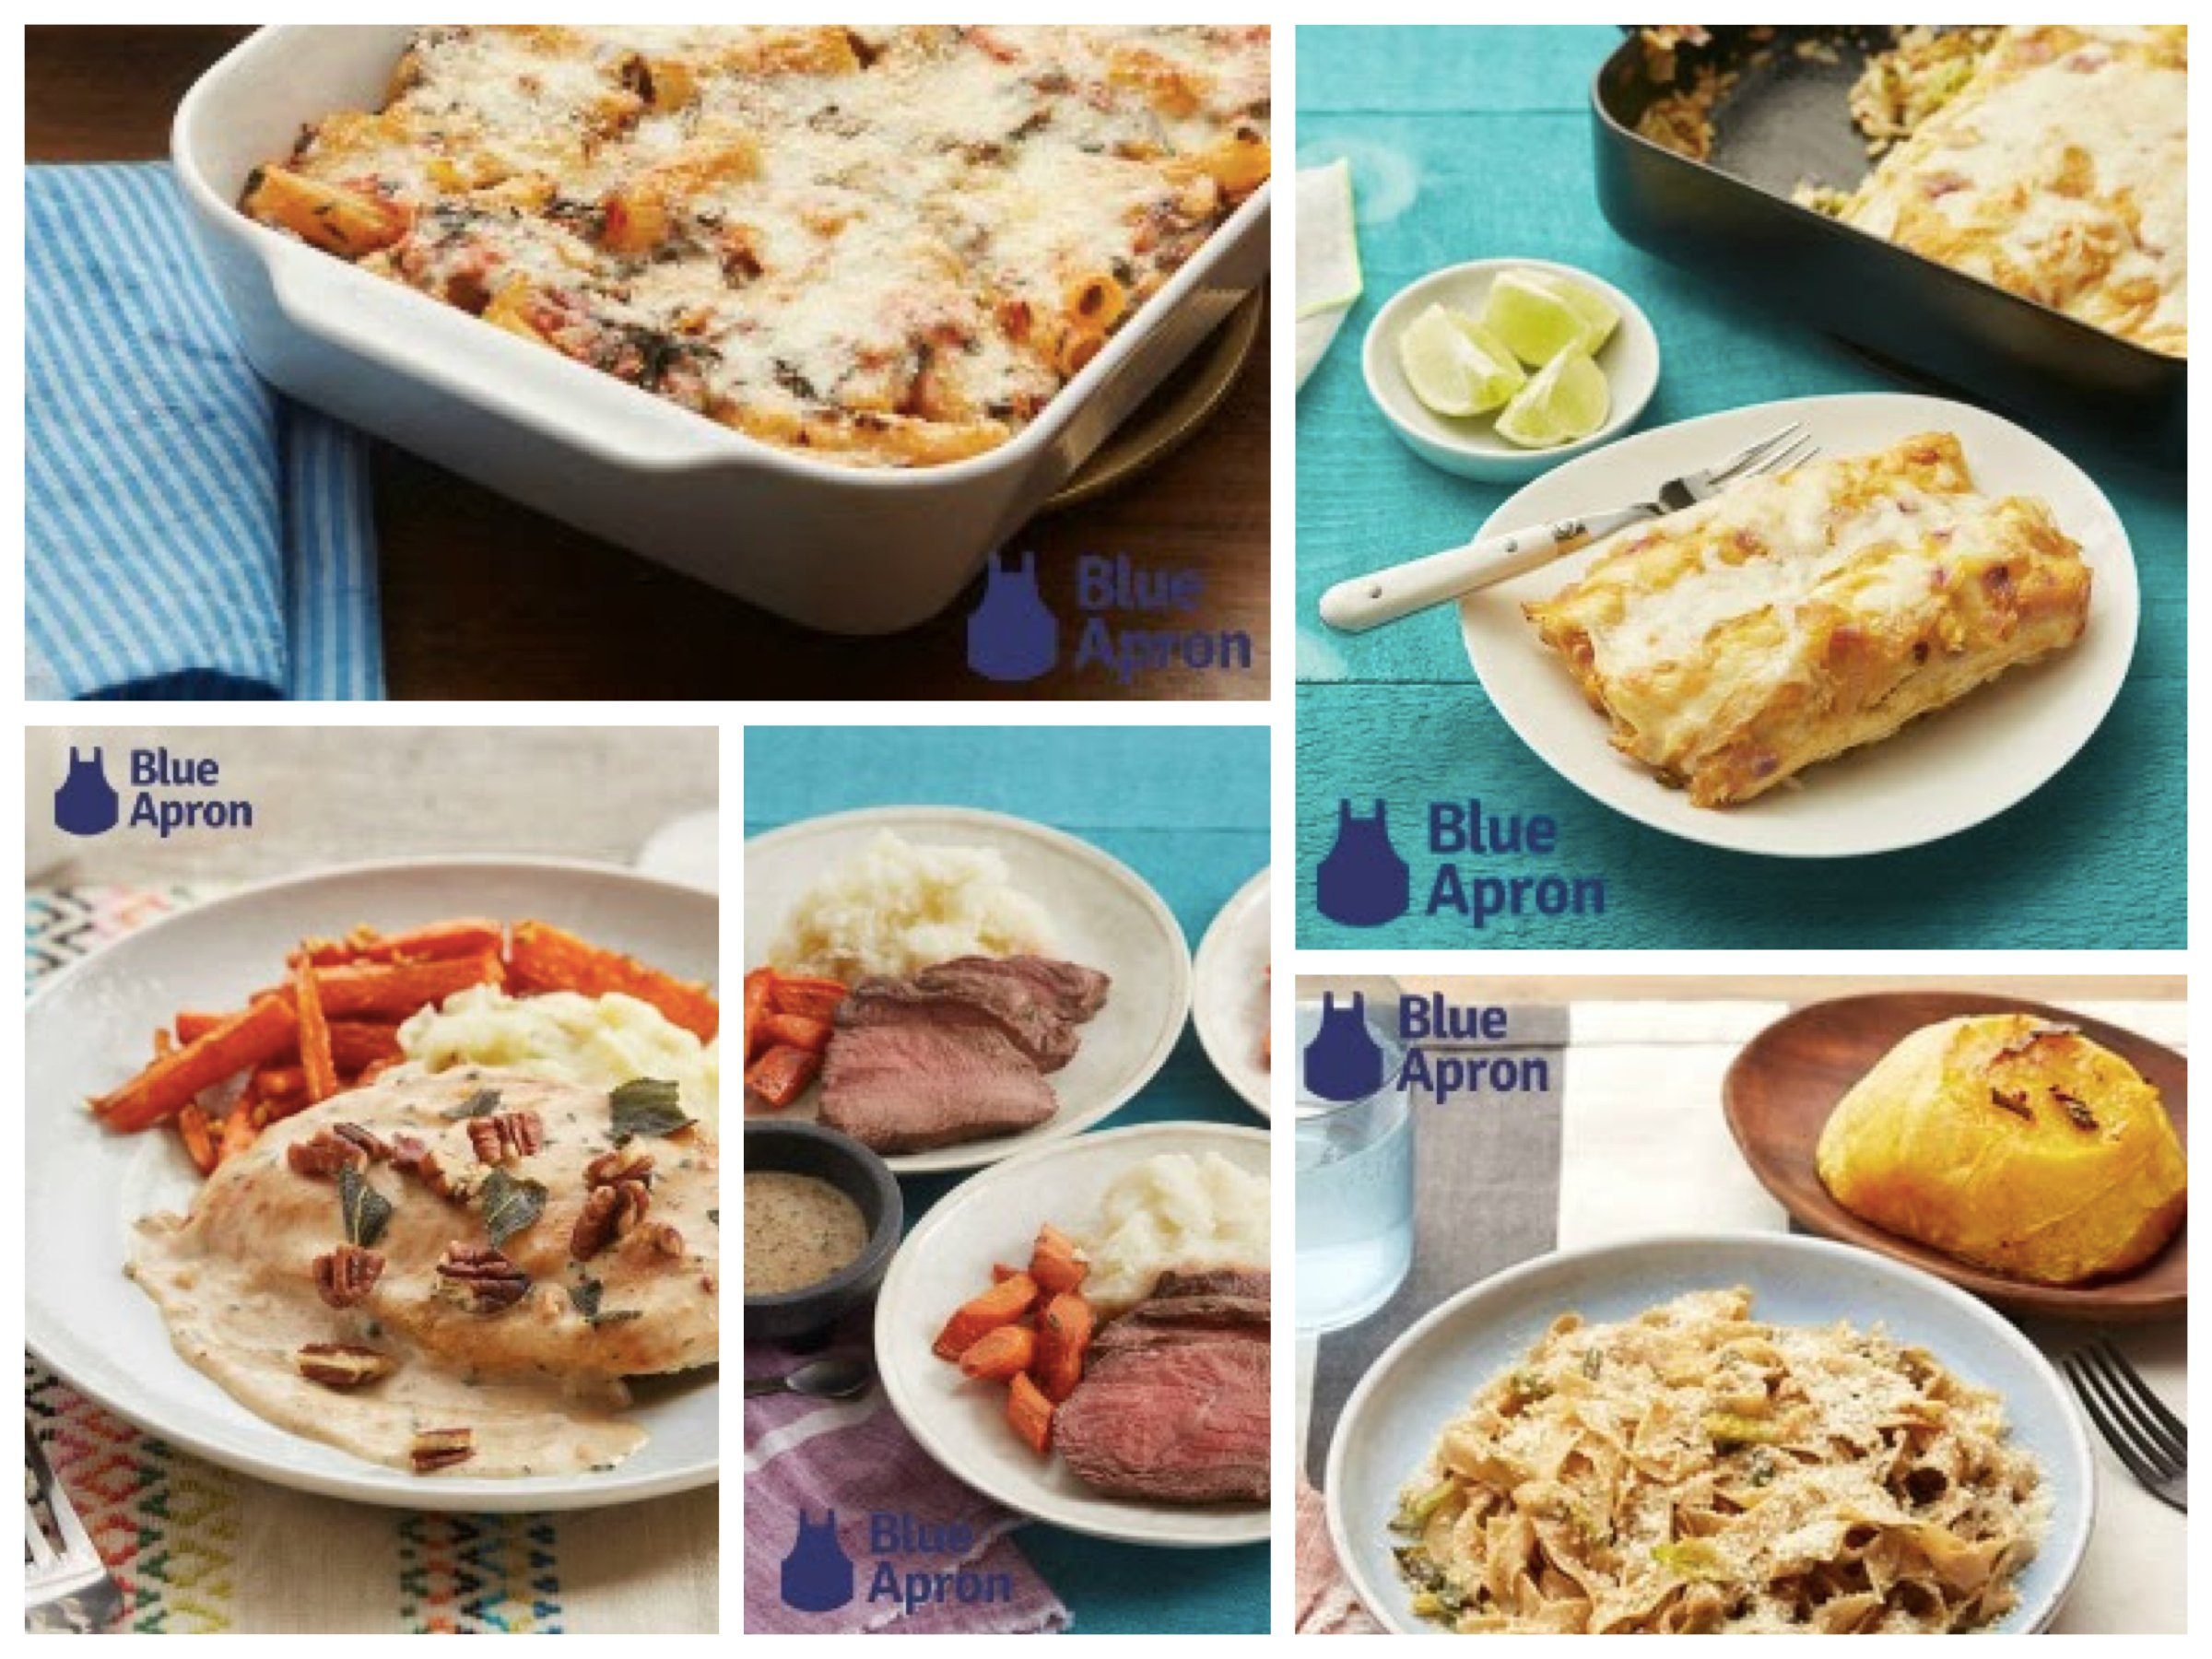 Blue apron gift - Blue Apron Gift Card Give The Gift Of Home Cooking Made Easy